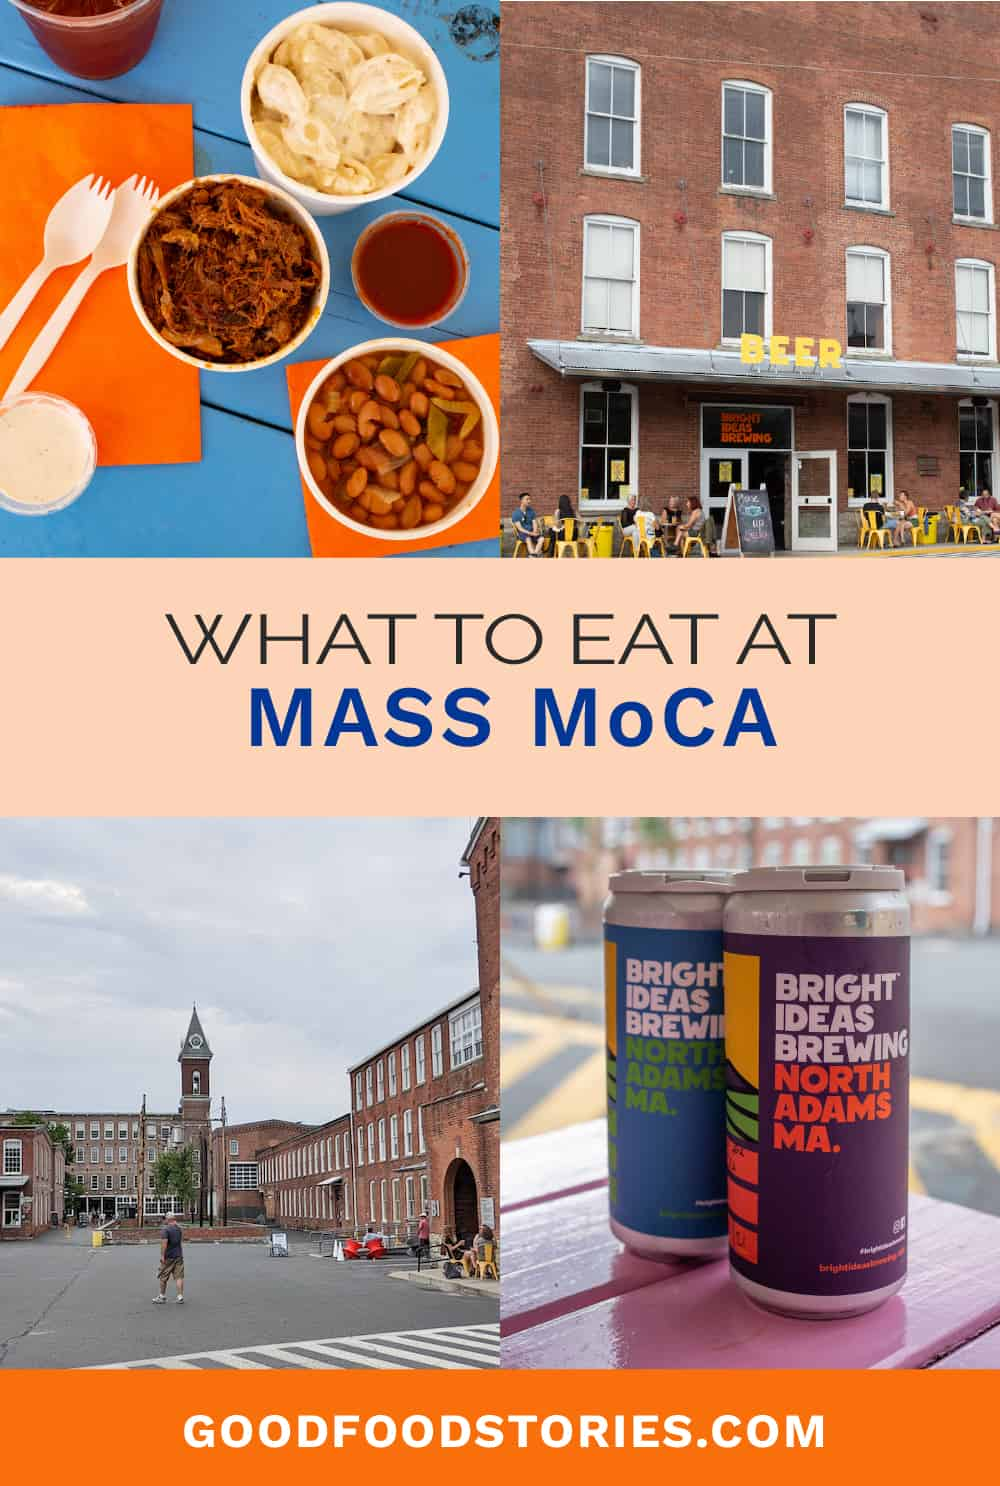 A-OK BBQ meal and Bright Ideas Brewing beers at MASS MoCA